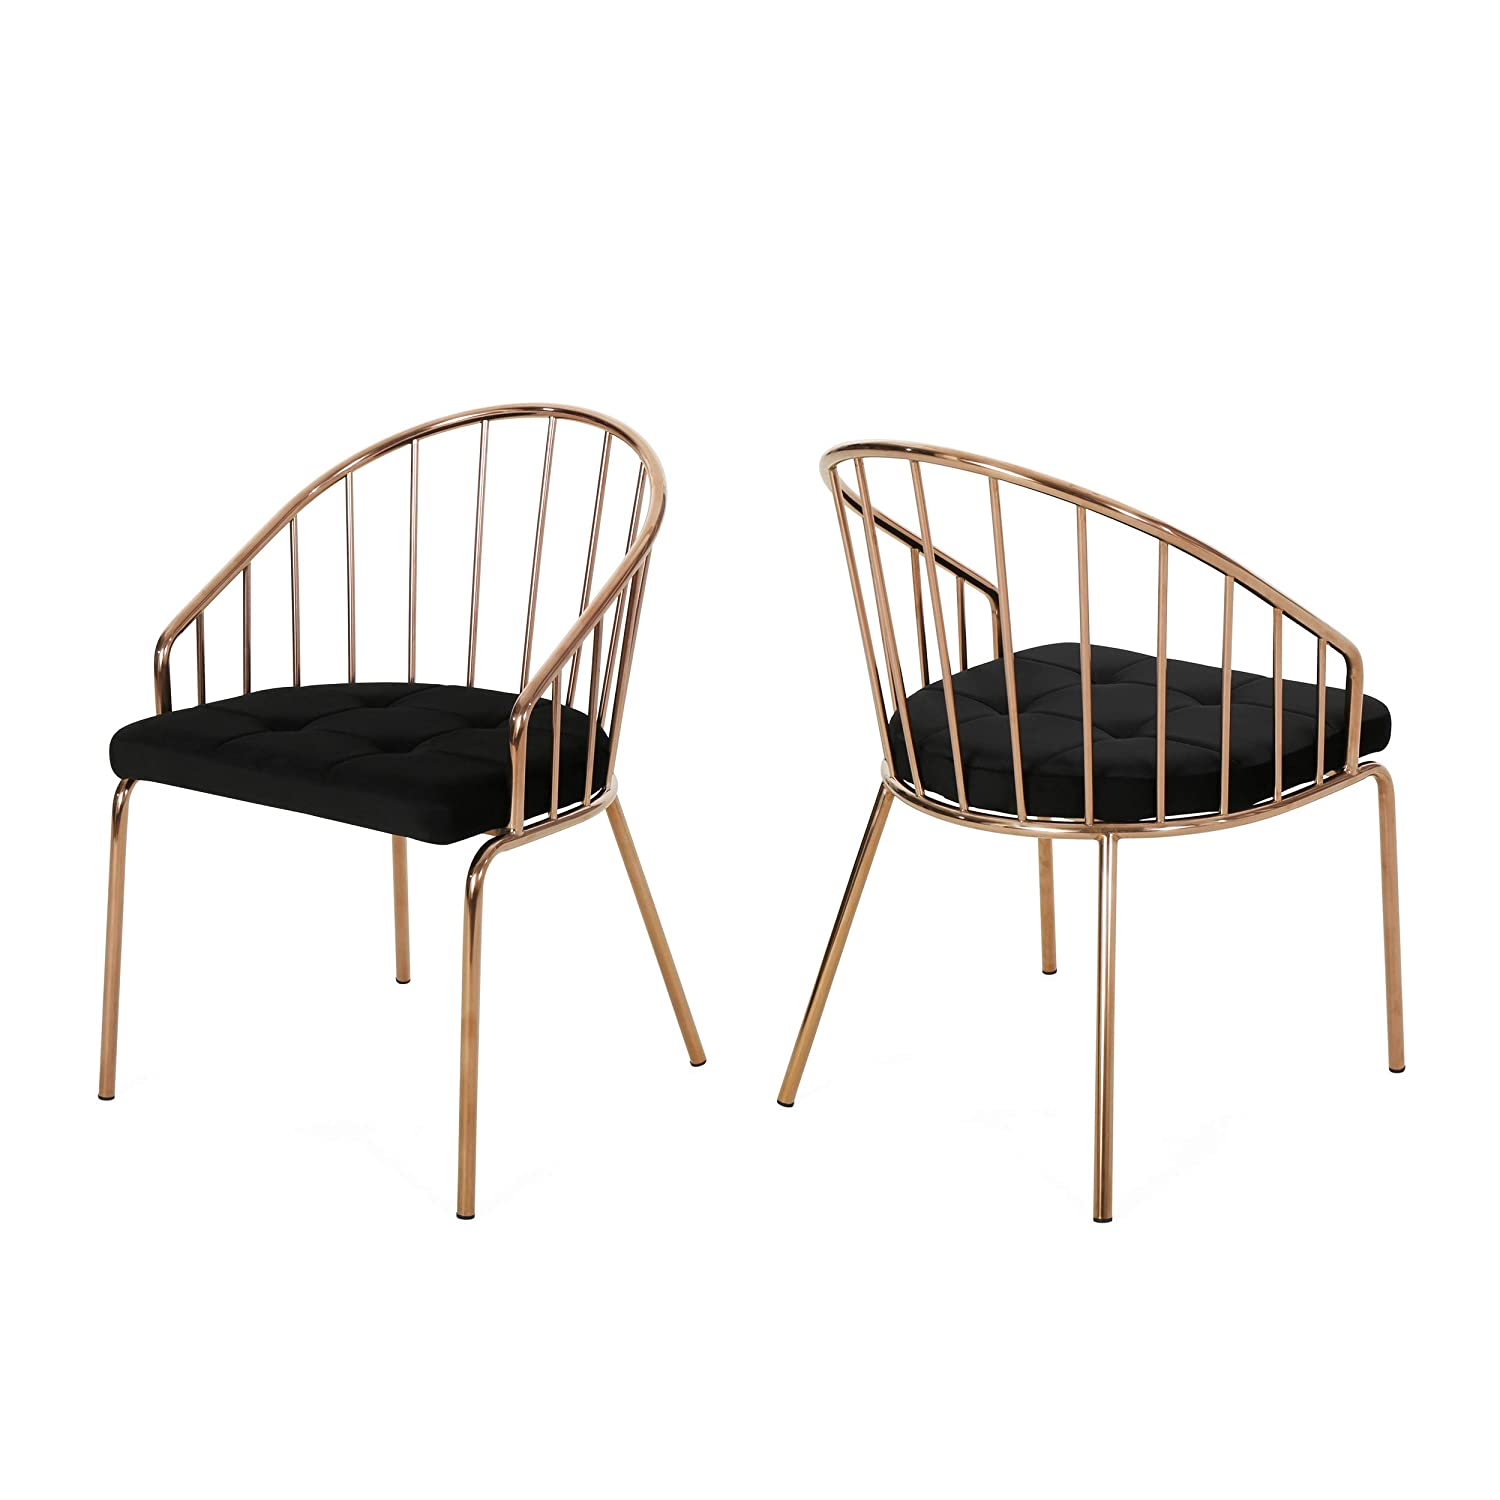 Christopher Knight Home Marcia Modern Velvet Dining Chair with Stainless Steel Frame (Set or 2), Black and Rose Gold